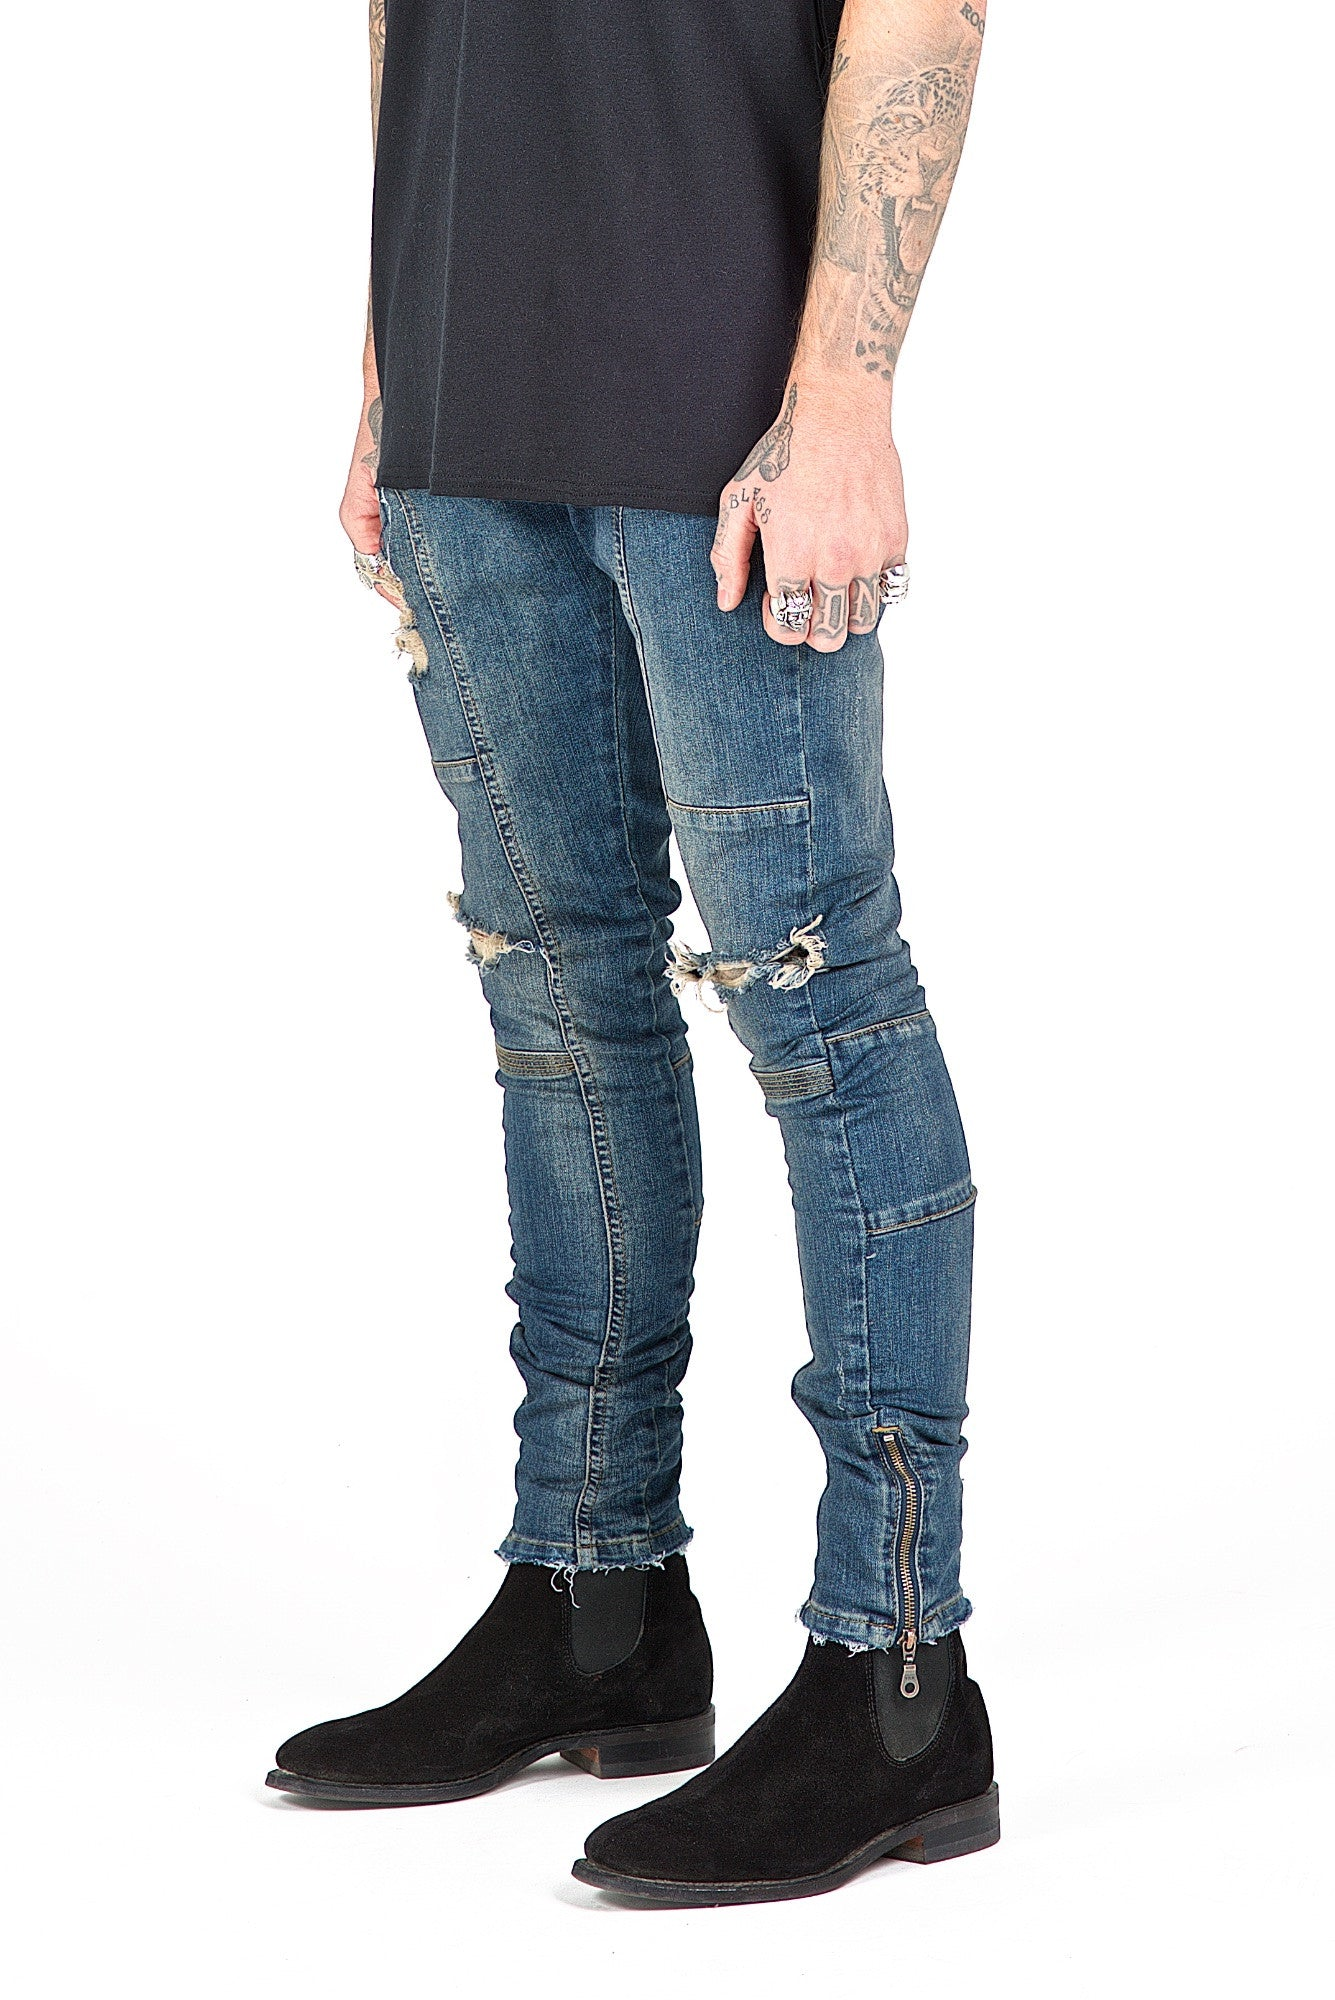 Essential Sand Kago Jeans